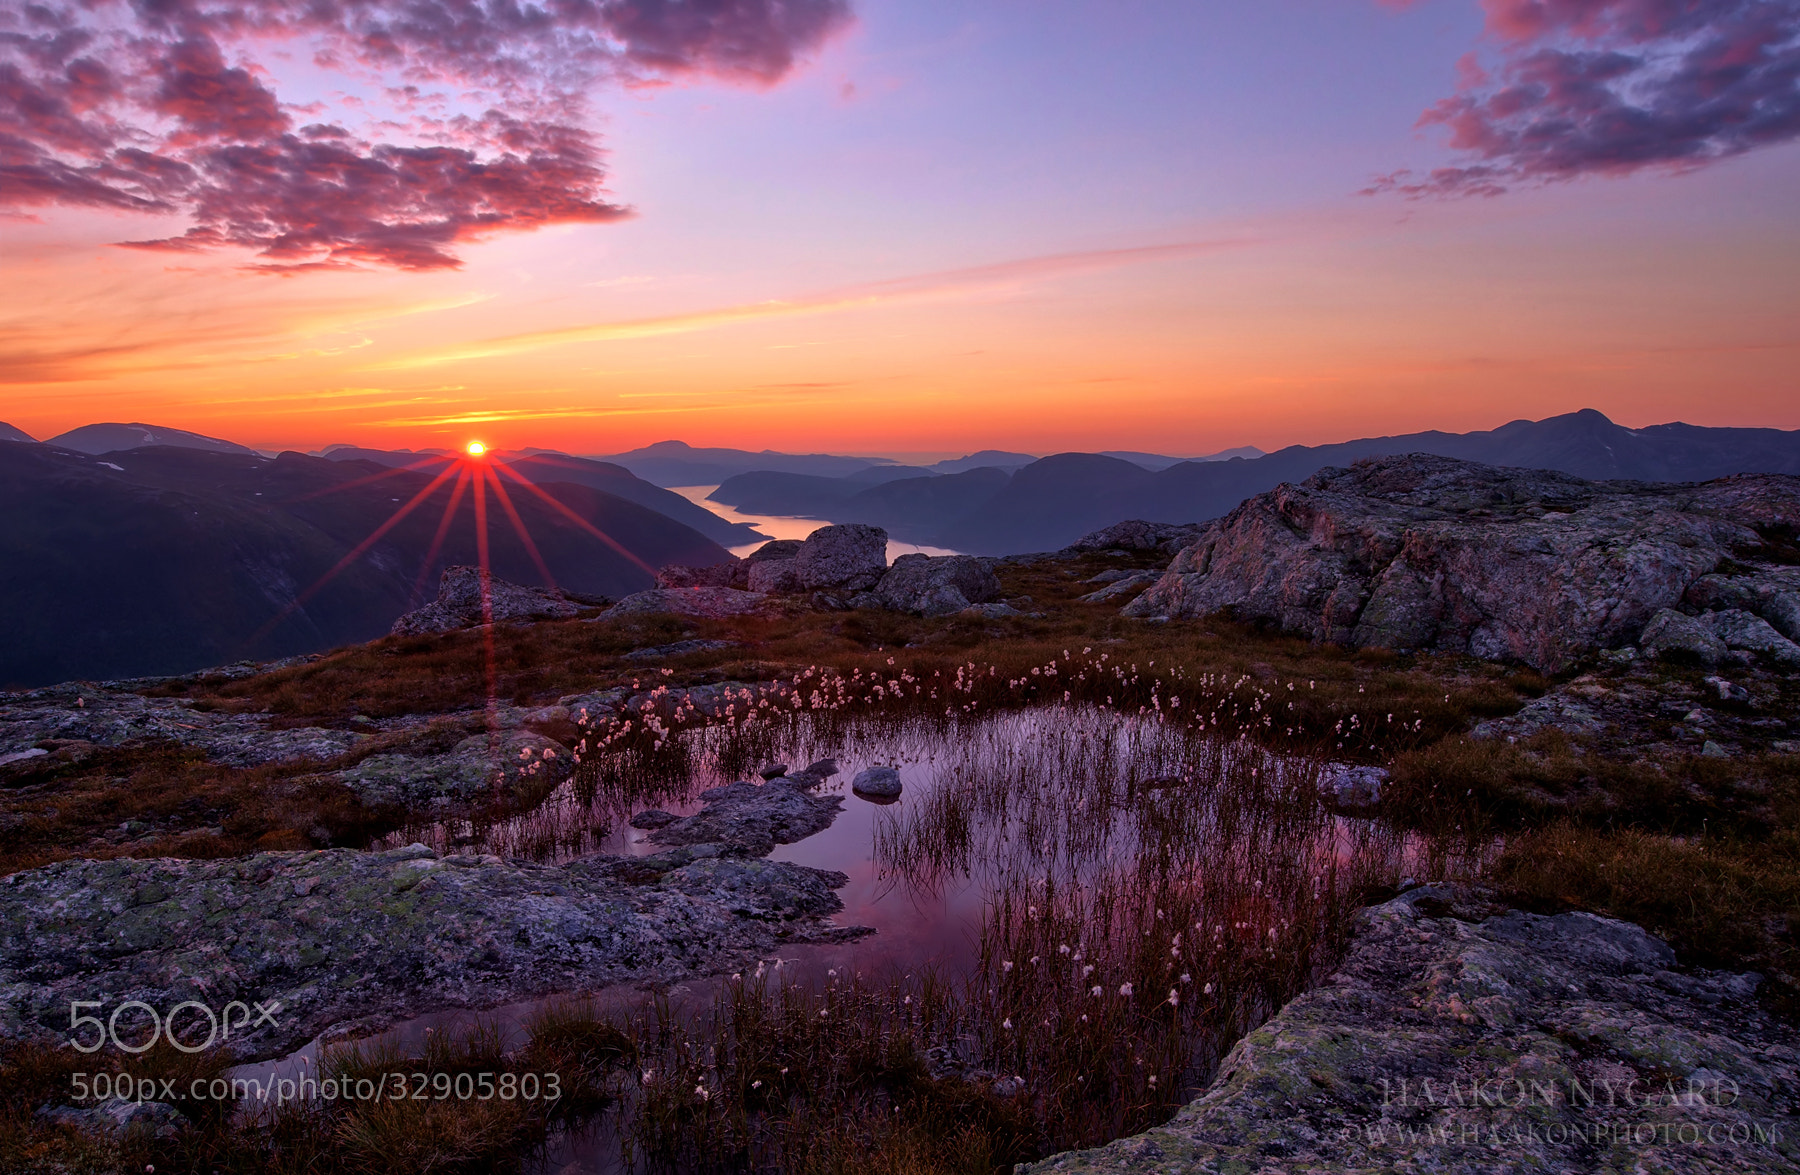 Photograph Fading Rays by Haakon Nygaard on 500px